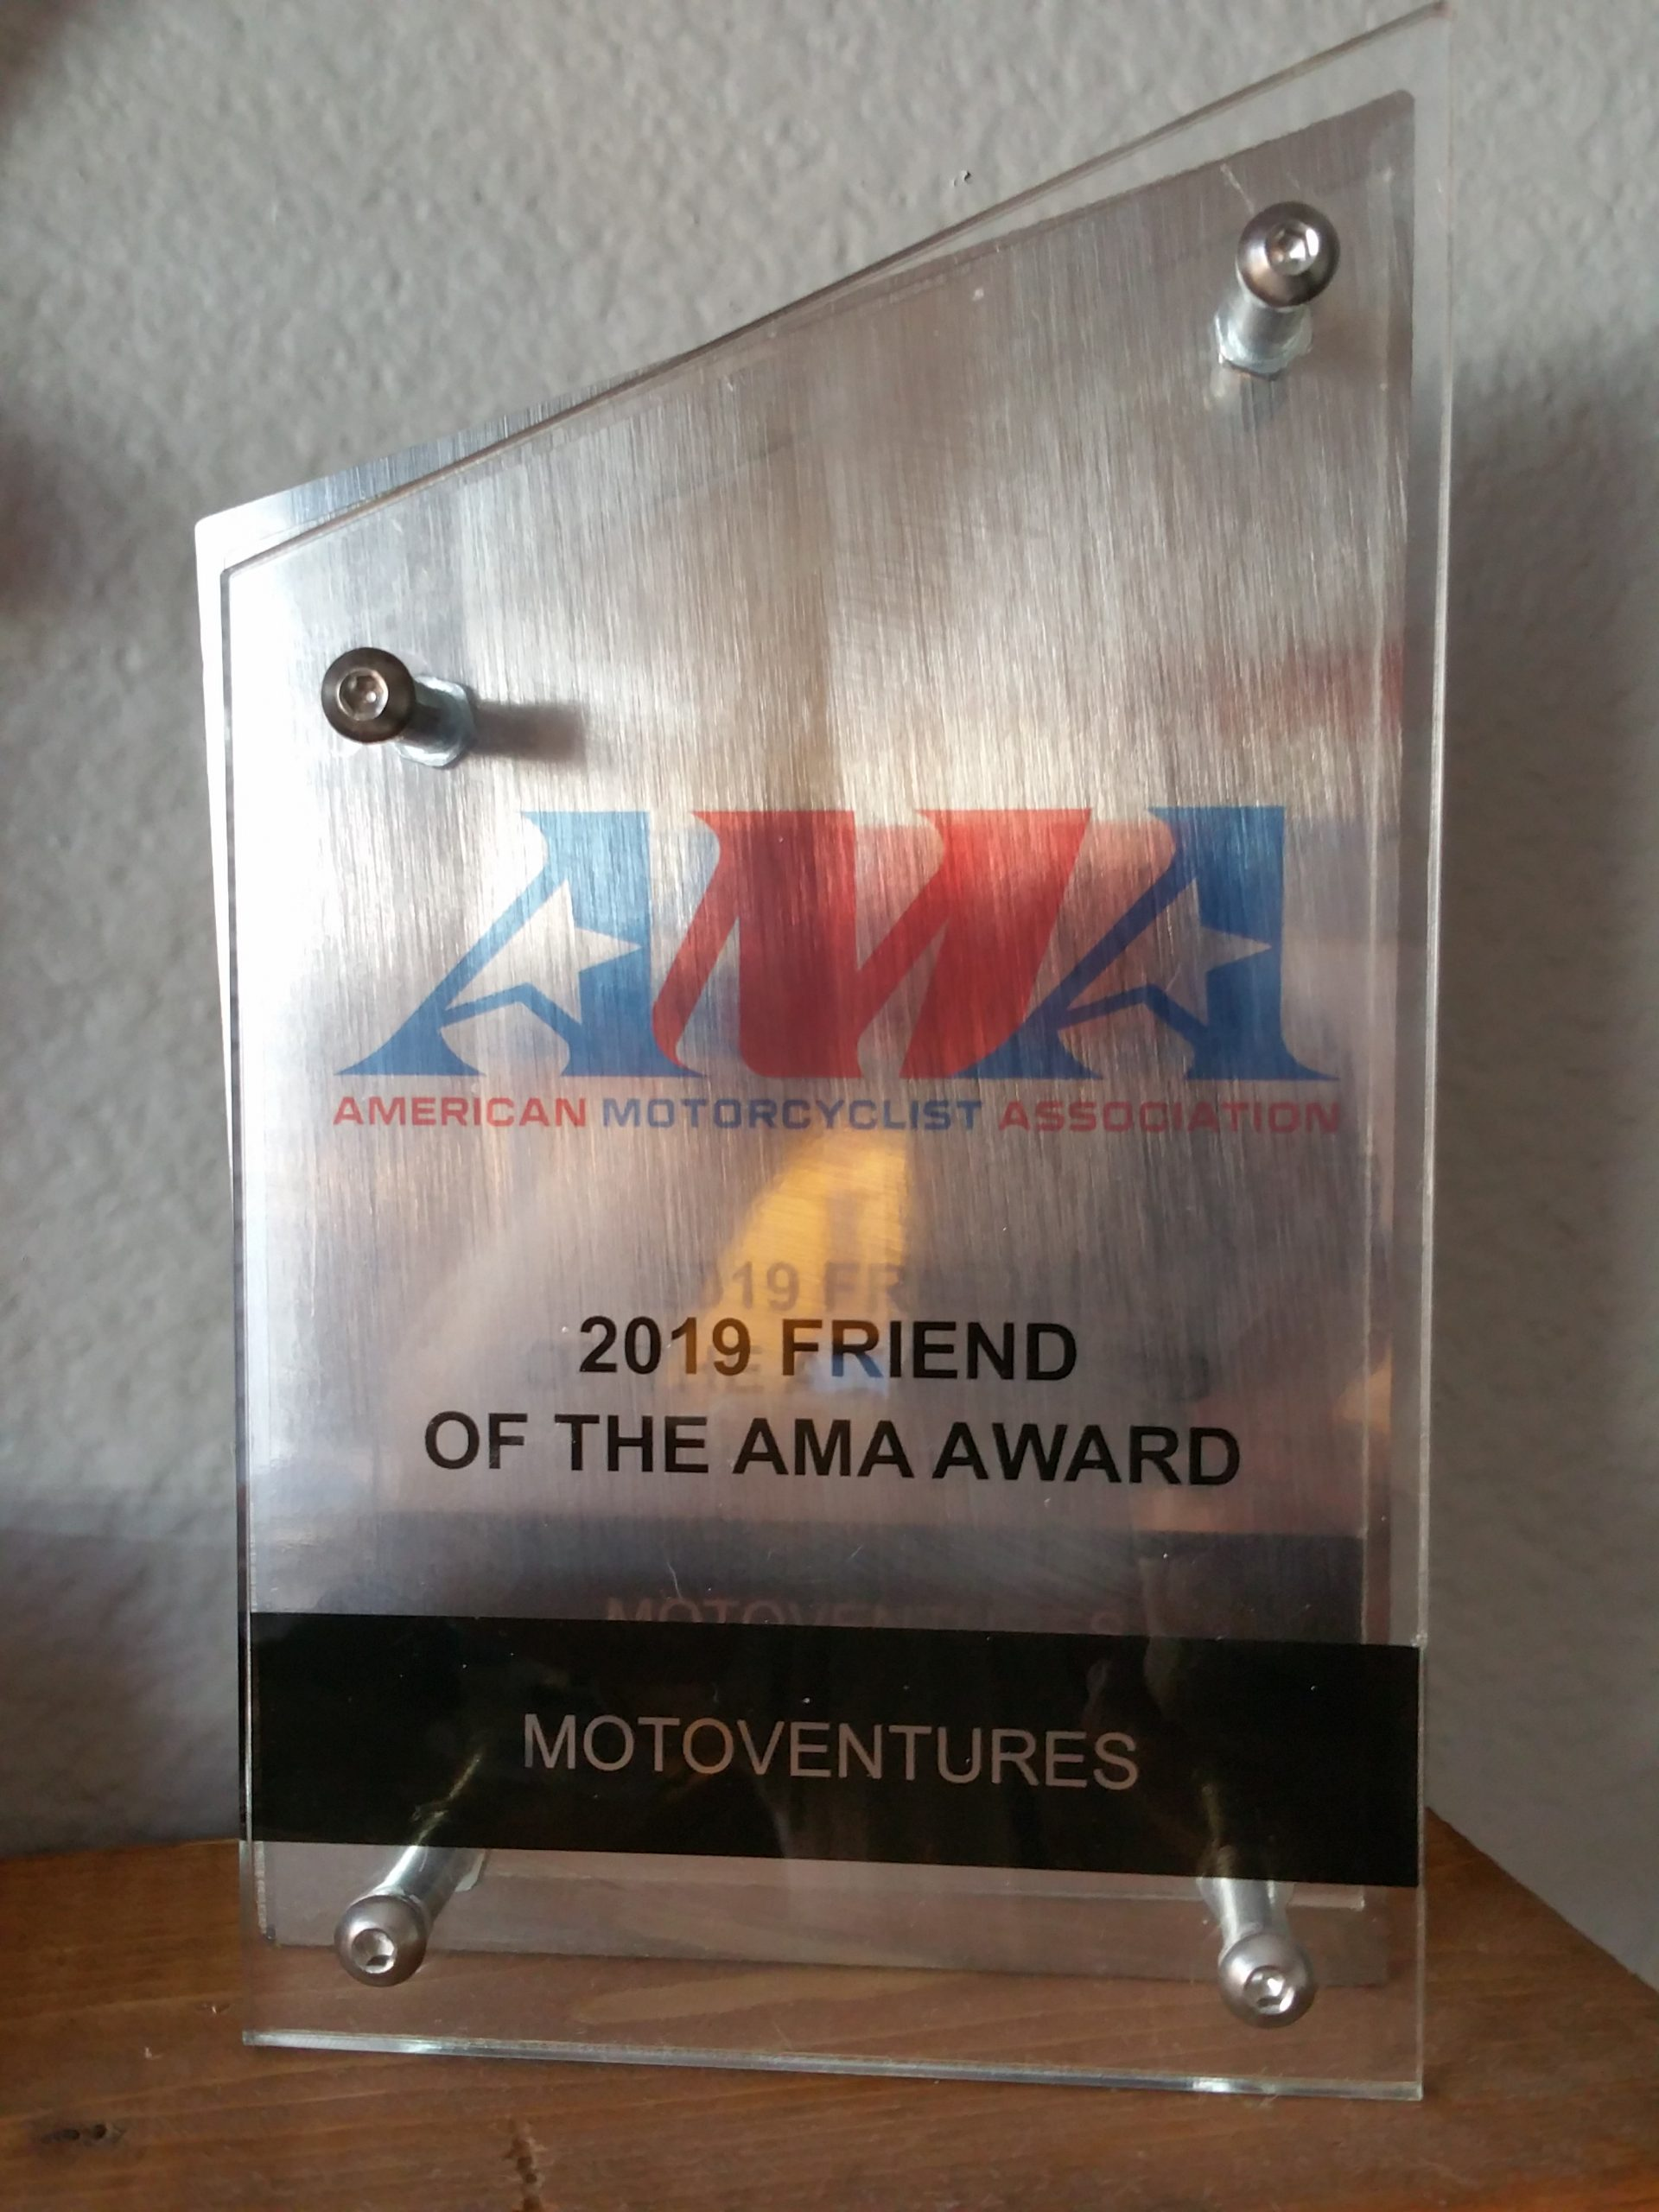 MOTOVENTURES 2019 Friend of the AMA Award